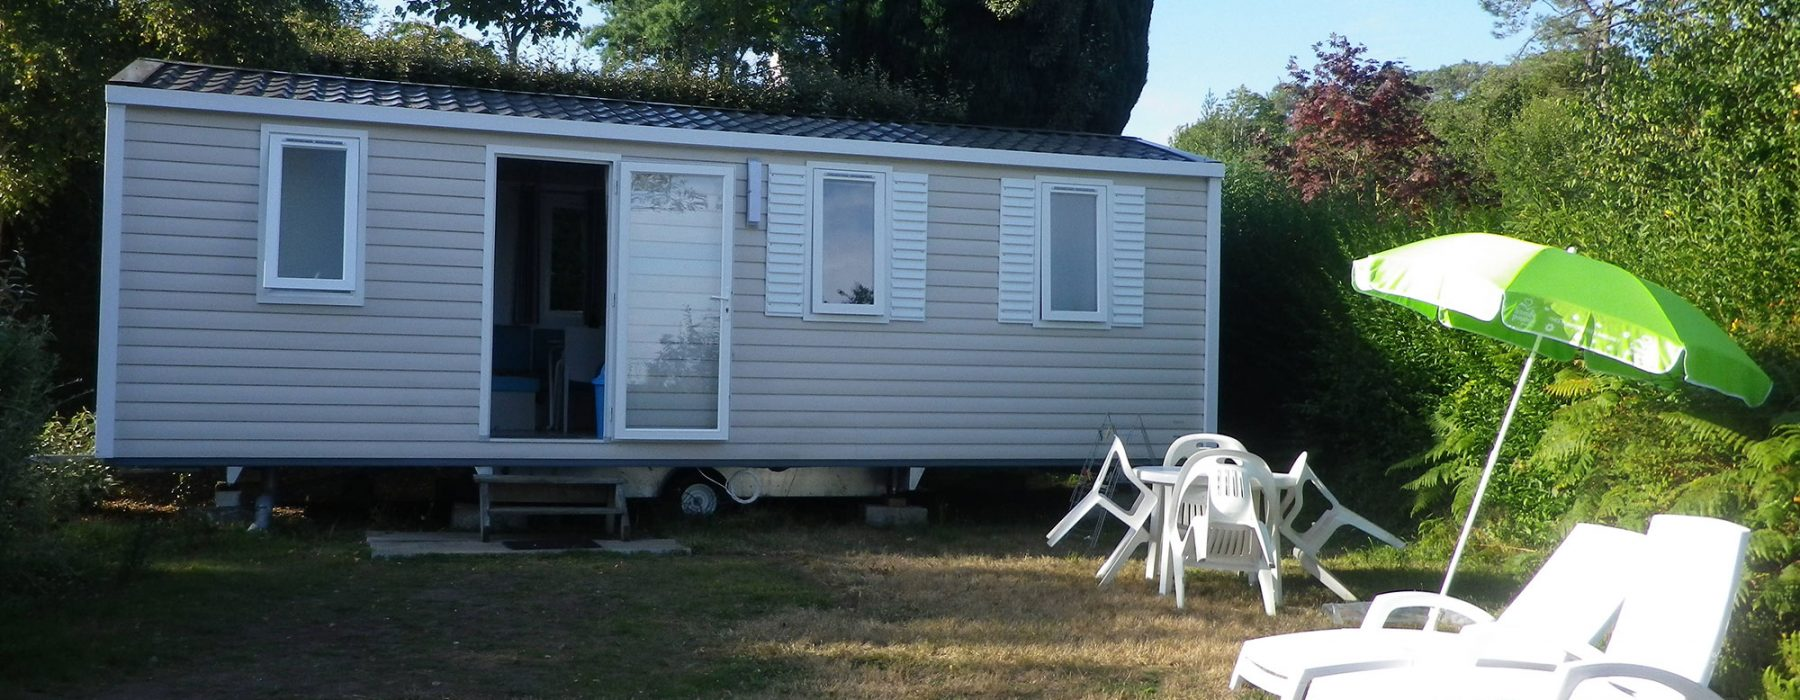 Location mobil-home 2 chambre Camping Crozon